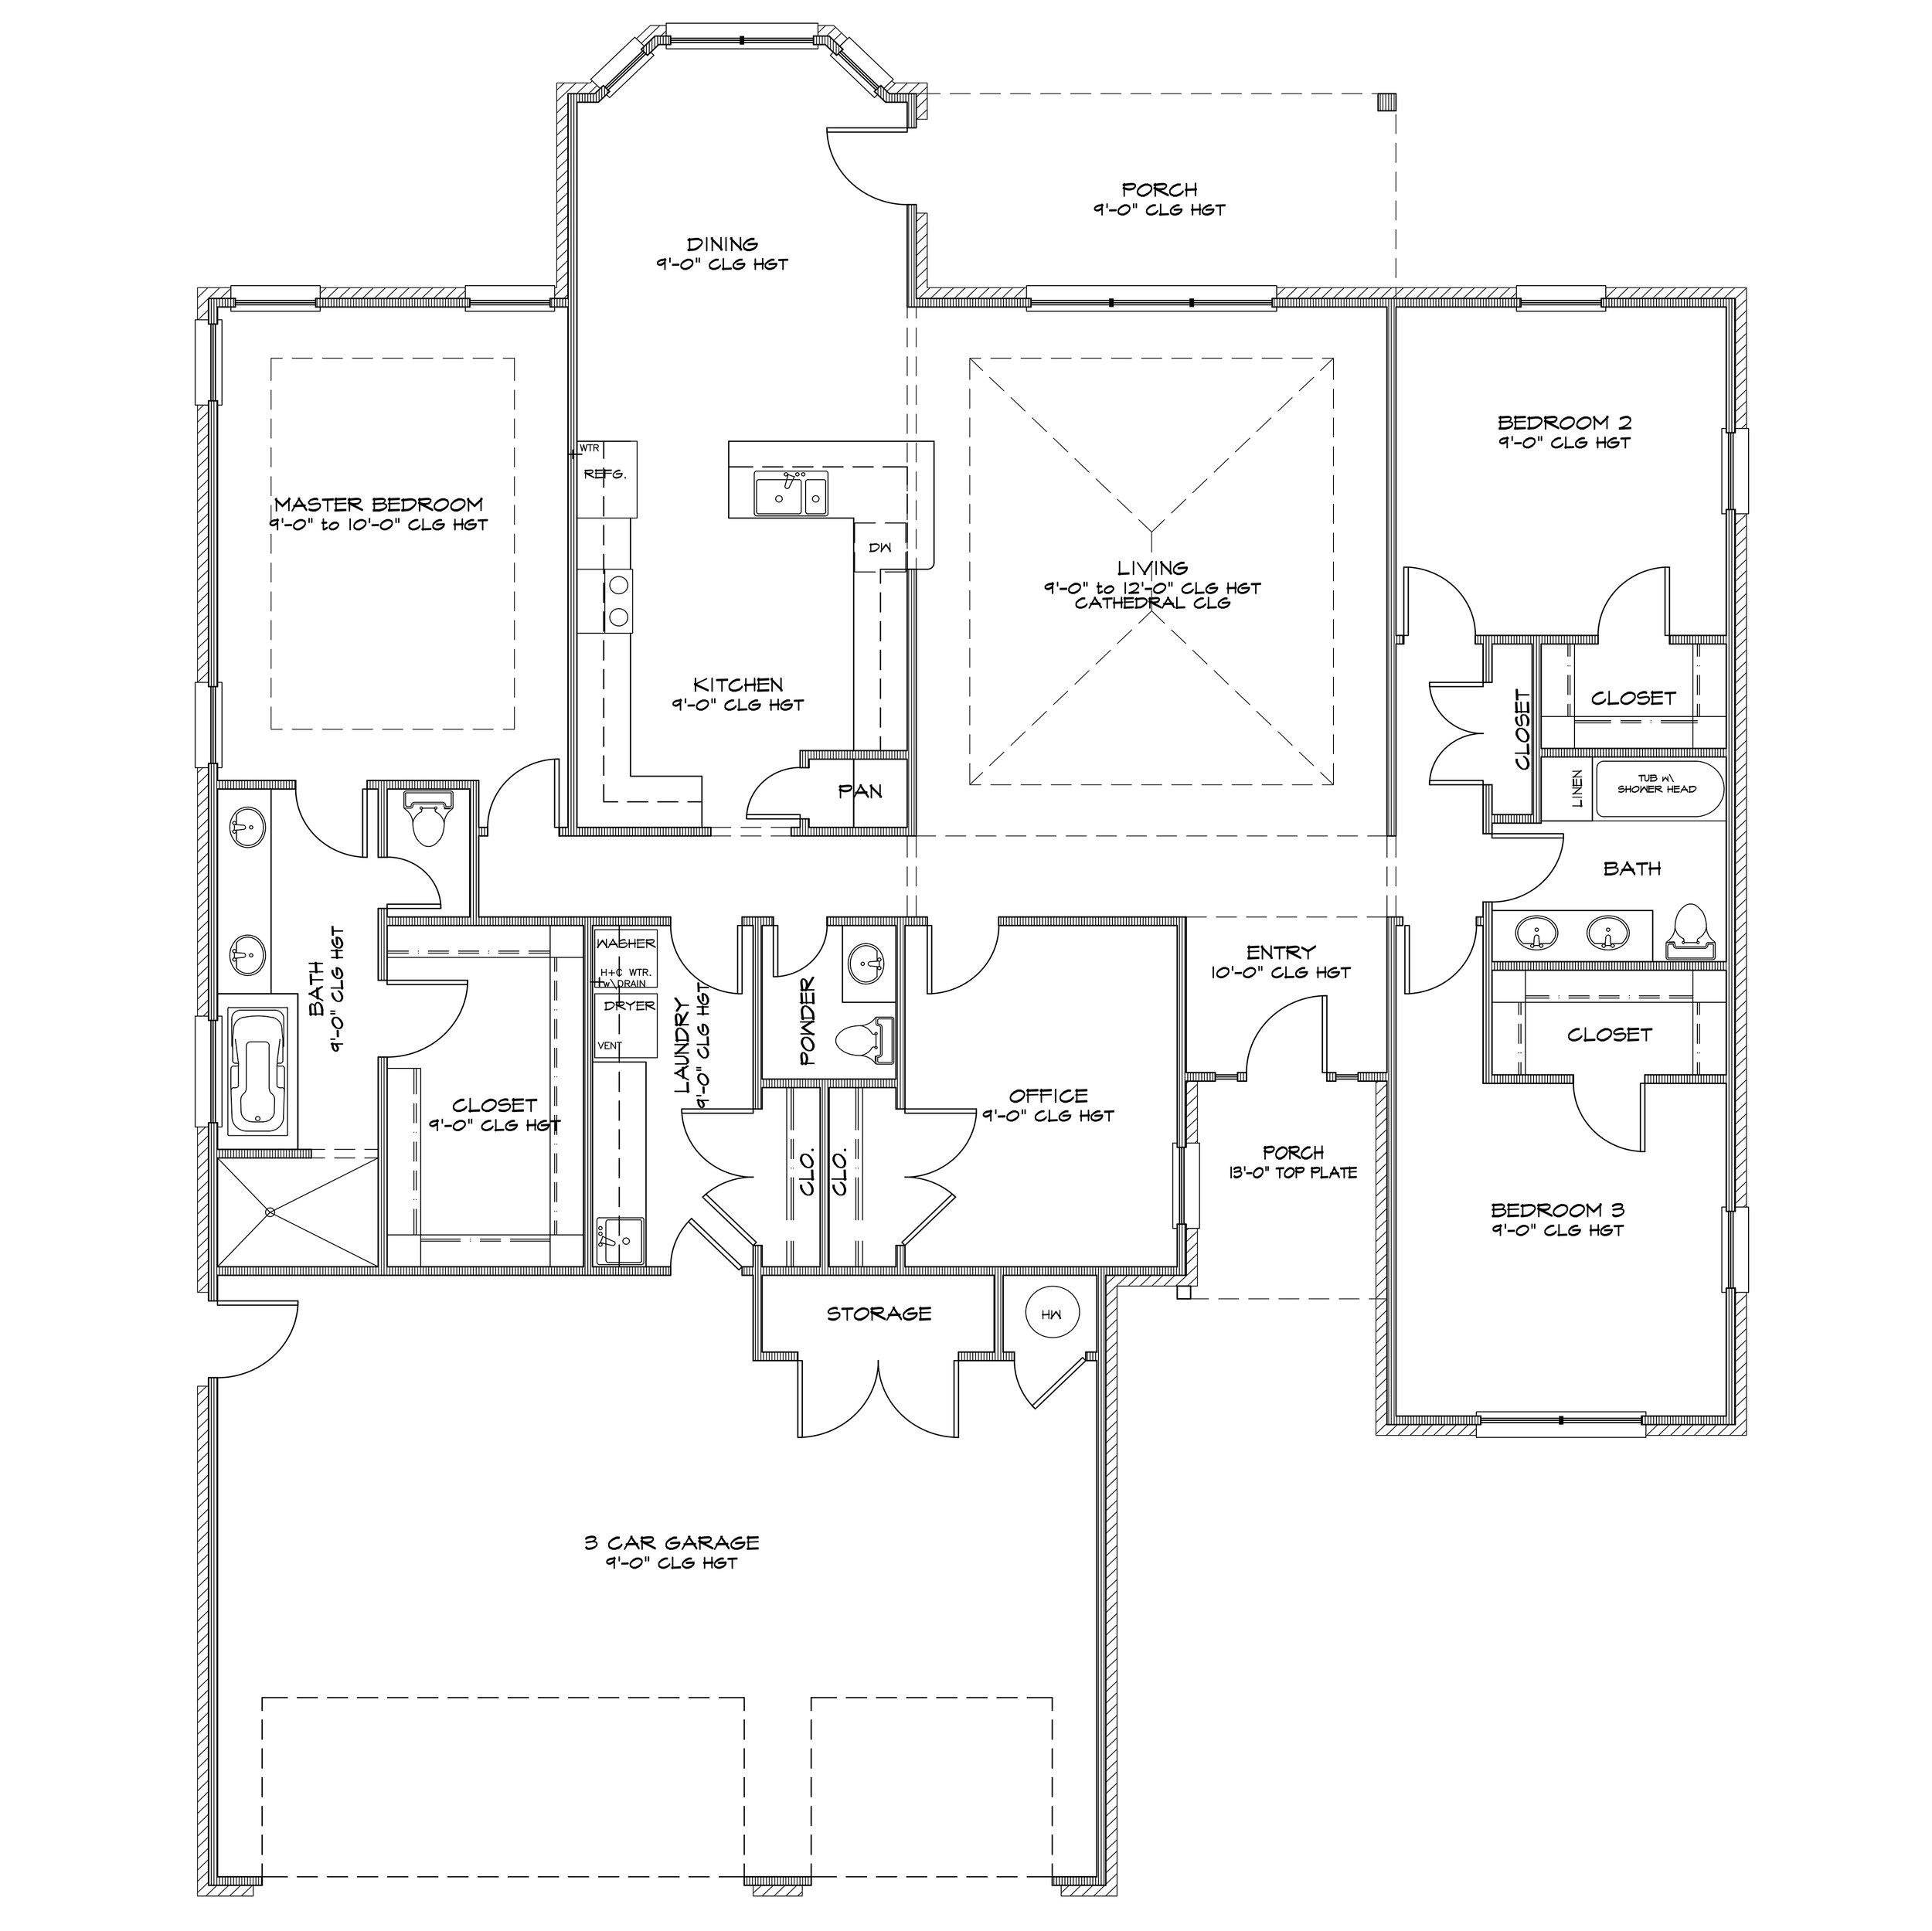 Specifications - 2,400 Sq Ft4 Bed / 2 Bath